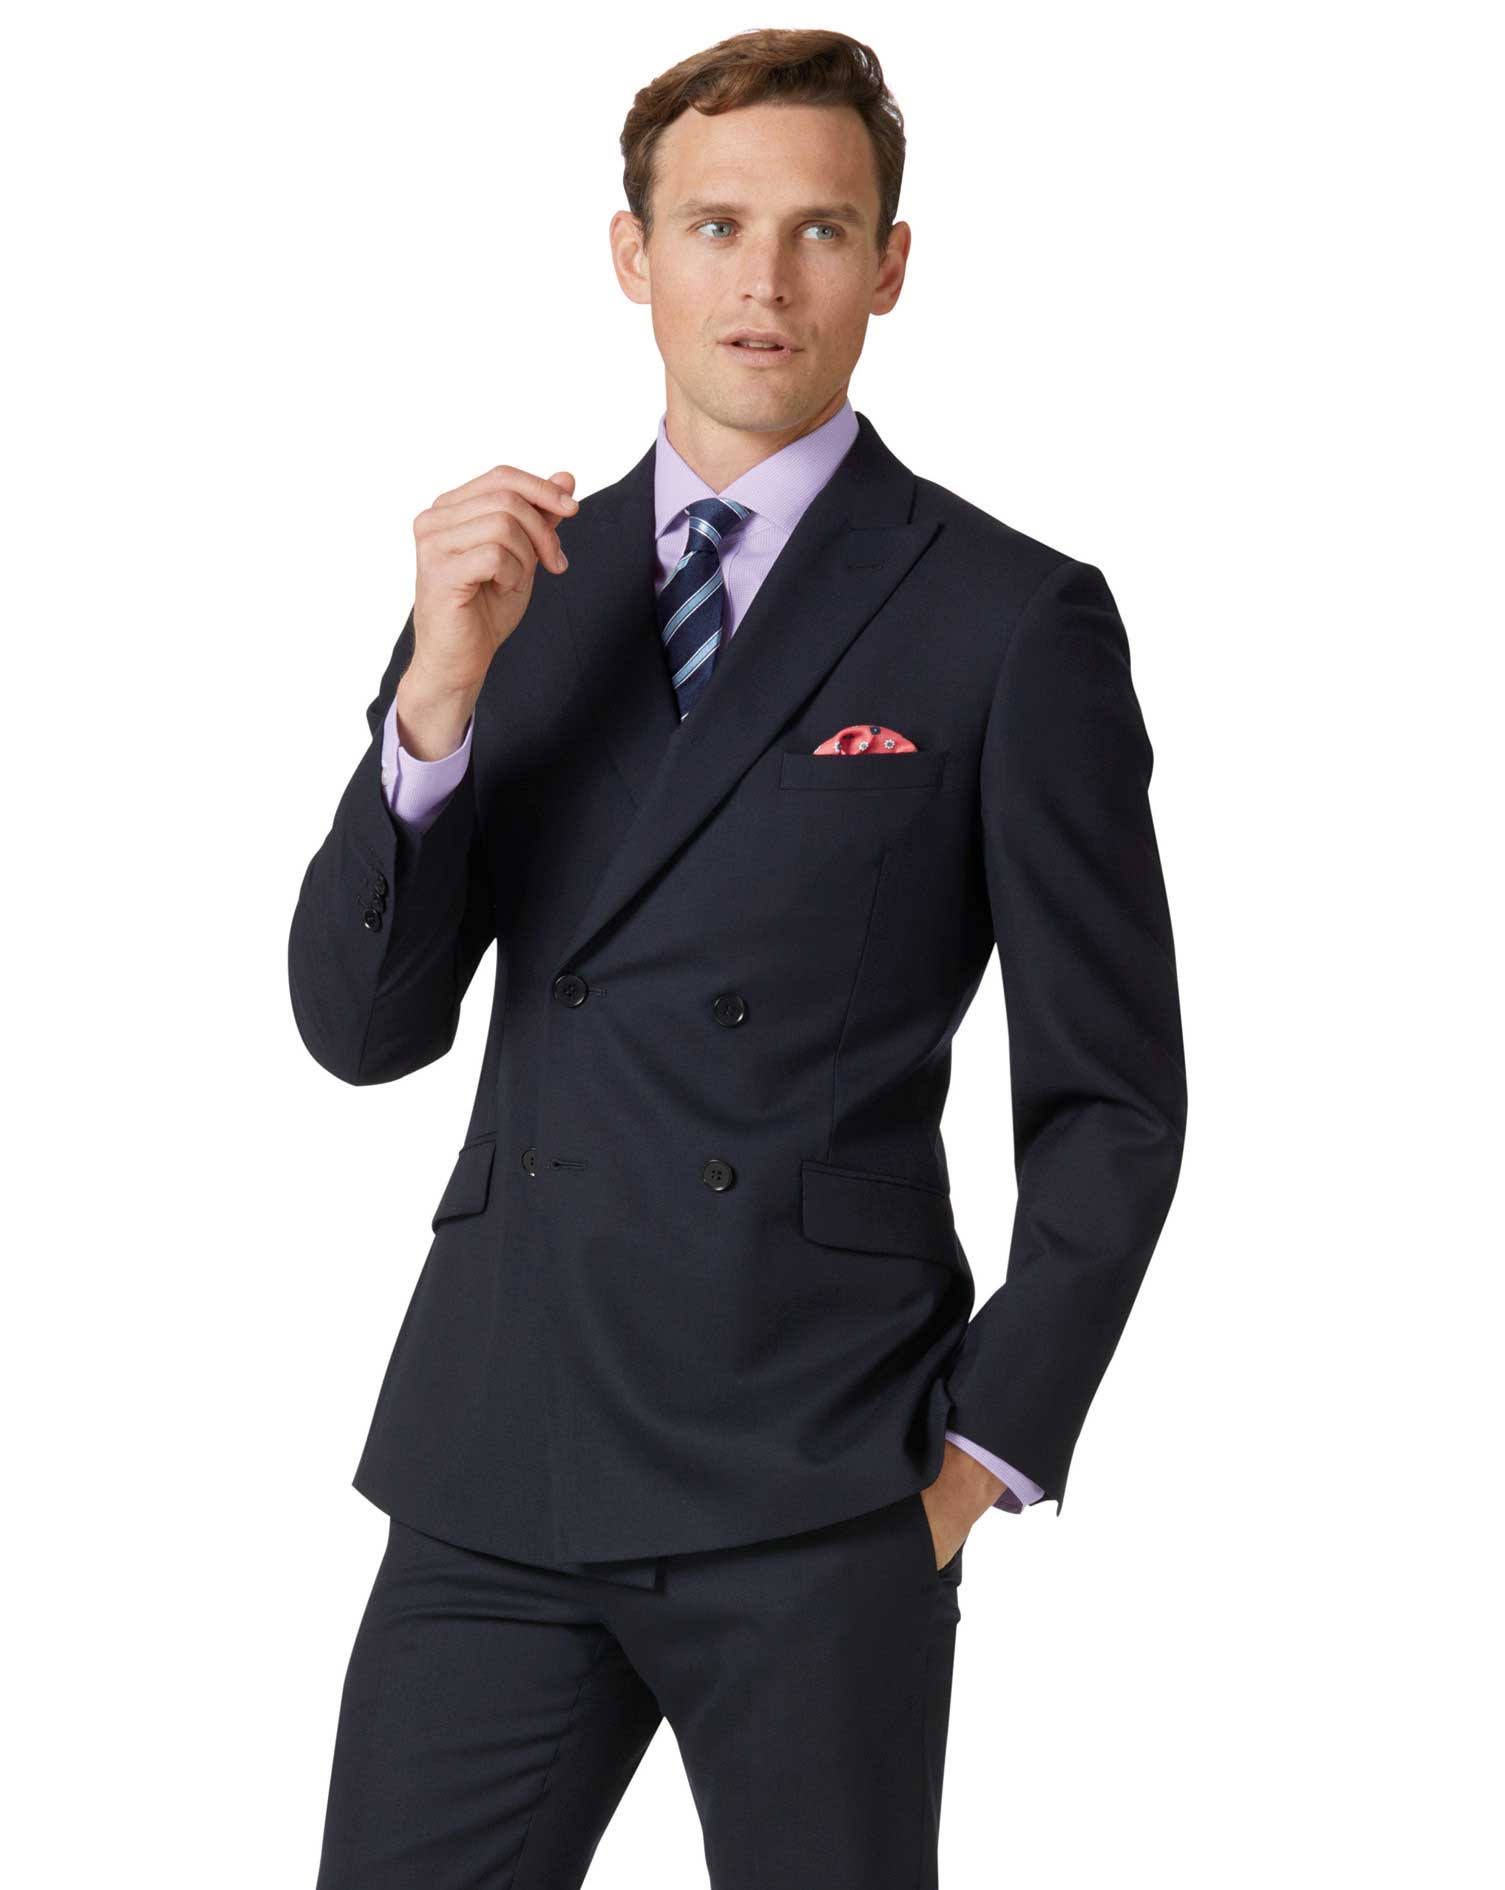 Midnight Blue Double Breasted Slim Fit Merino Business Suit Wool Jacket Size 40 Regular by Charles T